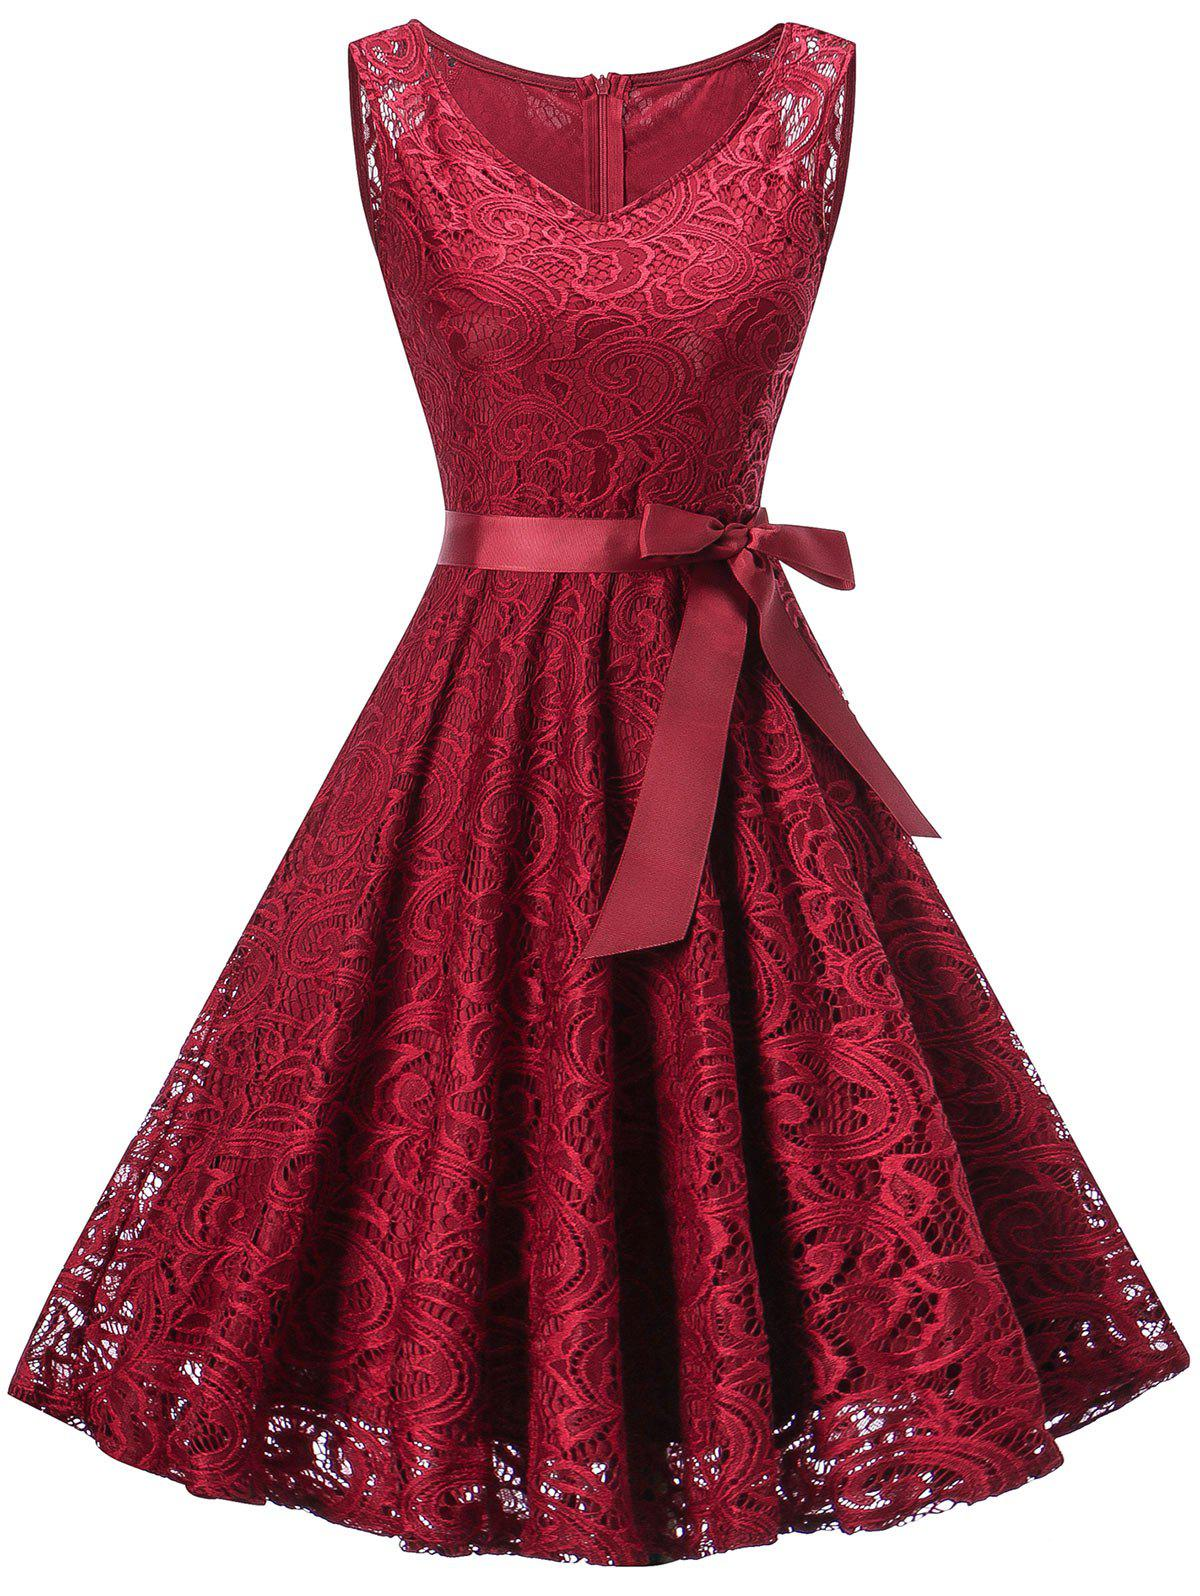 Sleeveless V Neck Lace Party DressWOMEN<br><br>Size: 2XL; Color: WINE RED; Style: Brief; Material: Polyester; Silhouette: A-Line; Dresses Length: Knee-Length; Neckline: V-Neck; Sleeve Length: Sleeveless; Pattern Type: Paisley; With Belt: Yes; Season: Fall,Spring; Weight: 0.5000kg; Package Contents: 1 x Dress  1 x Belt; Occasion: Bridesmaid,Cocktail &amp; Party,Night Out,Pageant Dresses,Party;